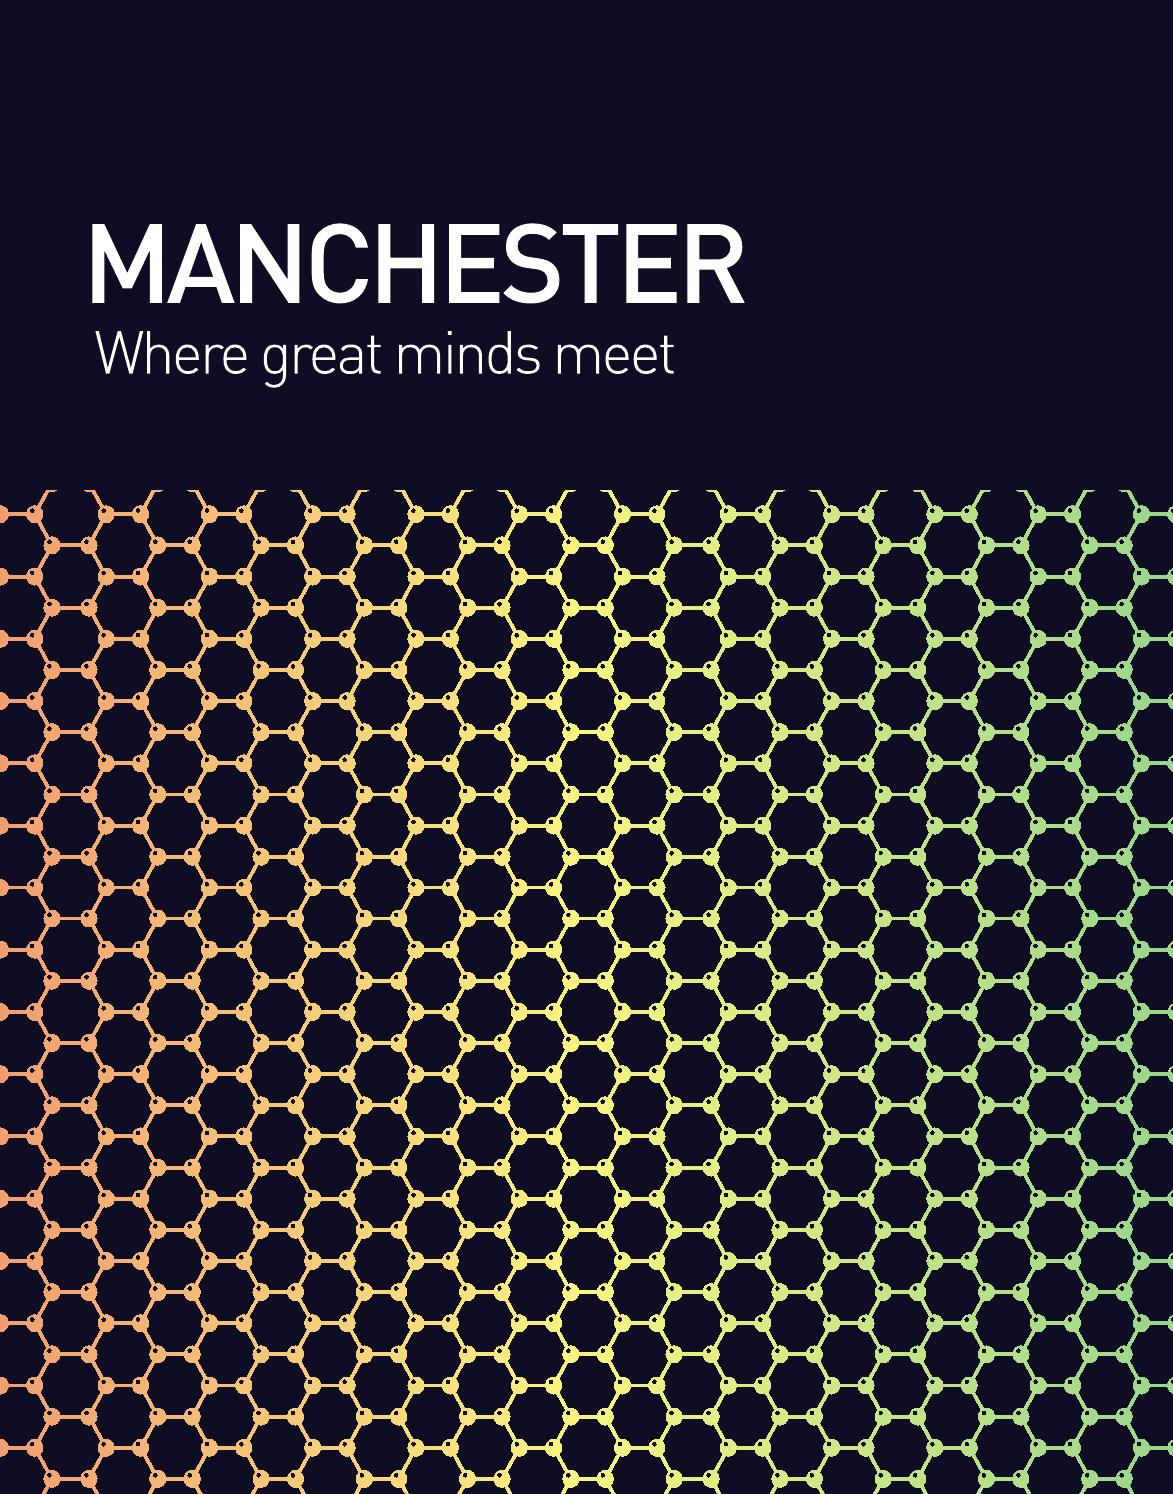 Manchester conference exhibition guide 201617 by marketing manchester conference exhibition guide 201617 by marketing manchester issuu kristyandbryce Images